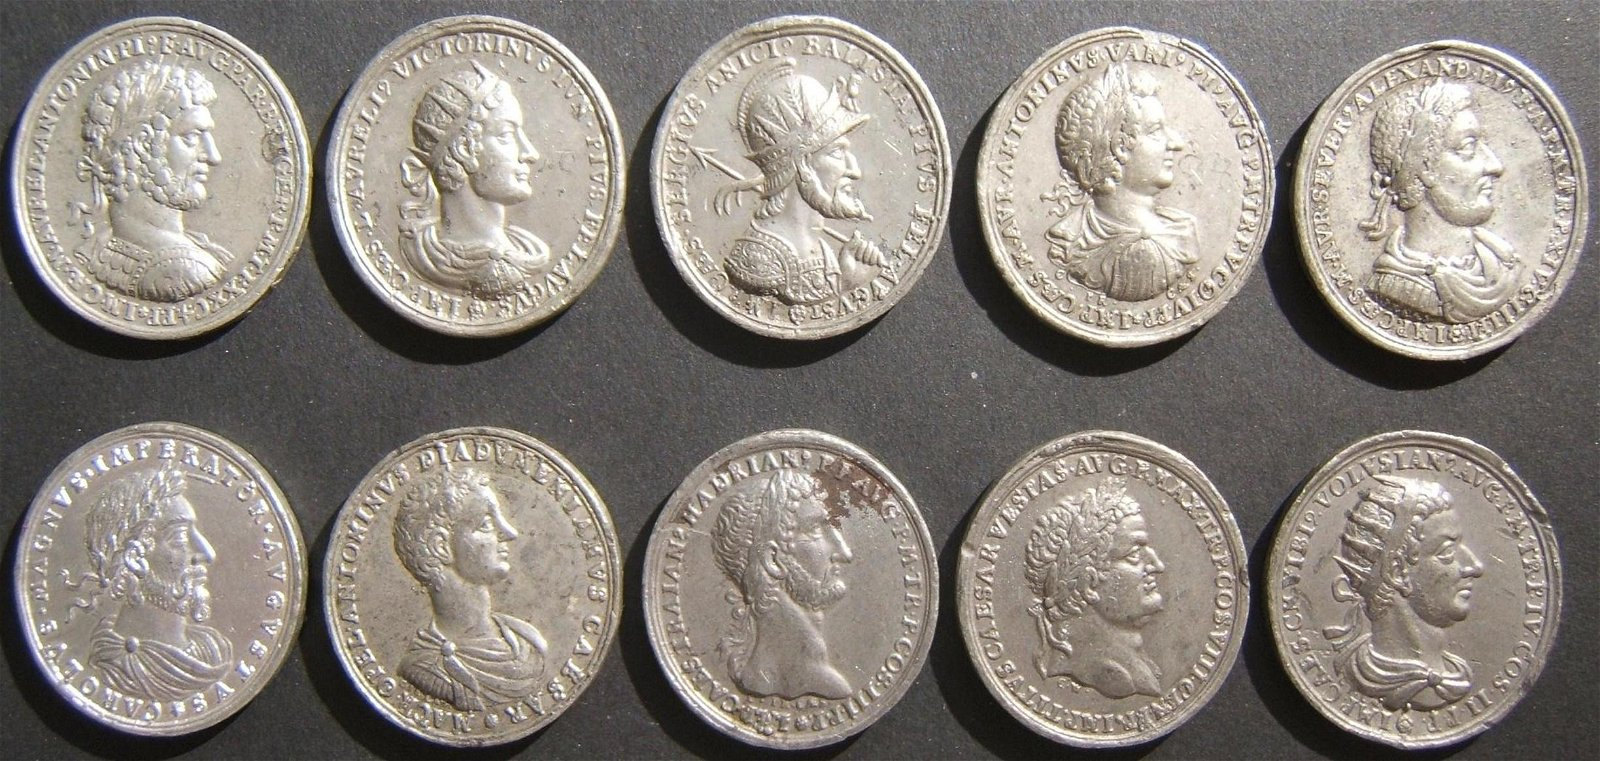 10x portait medals of Roman & Byzantine emperors by